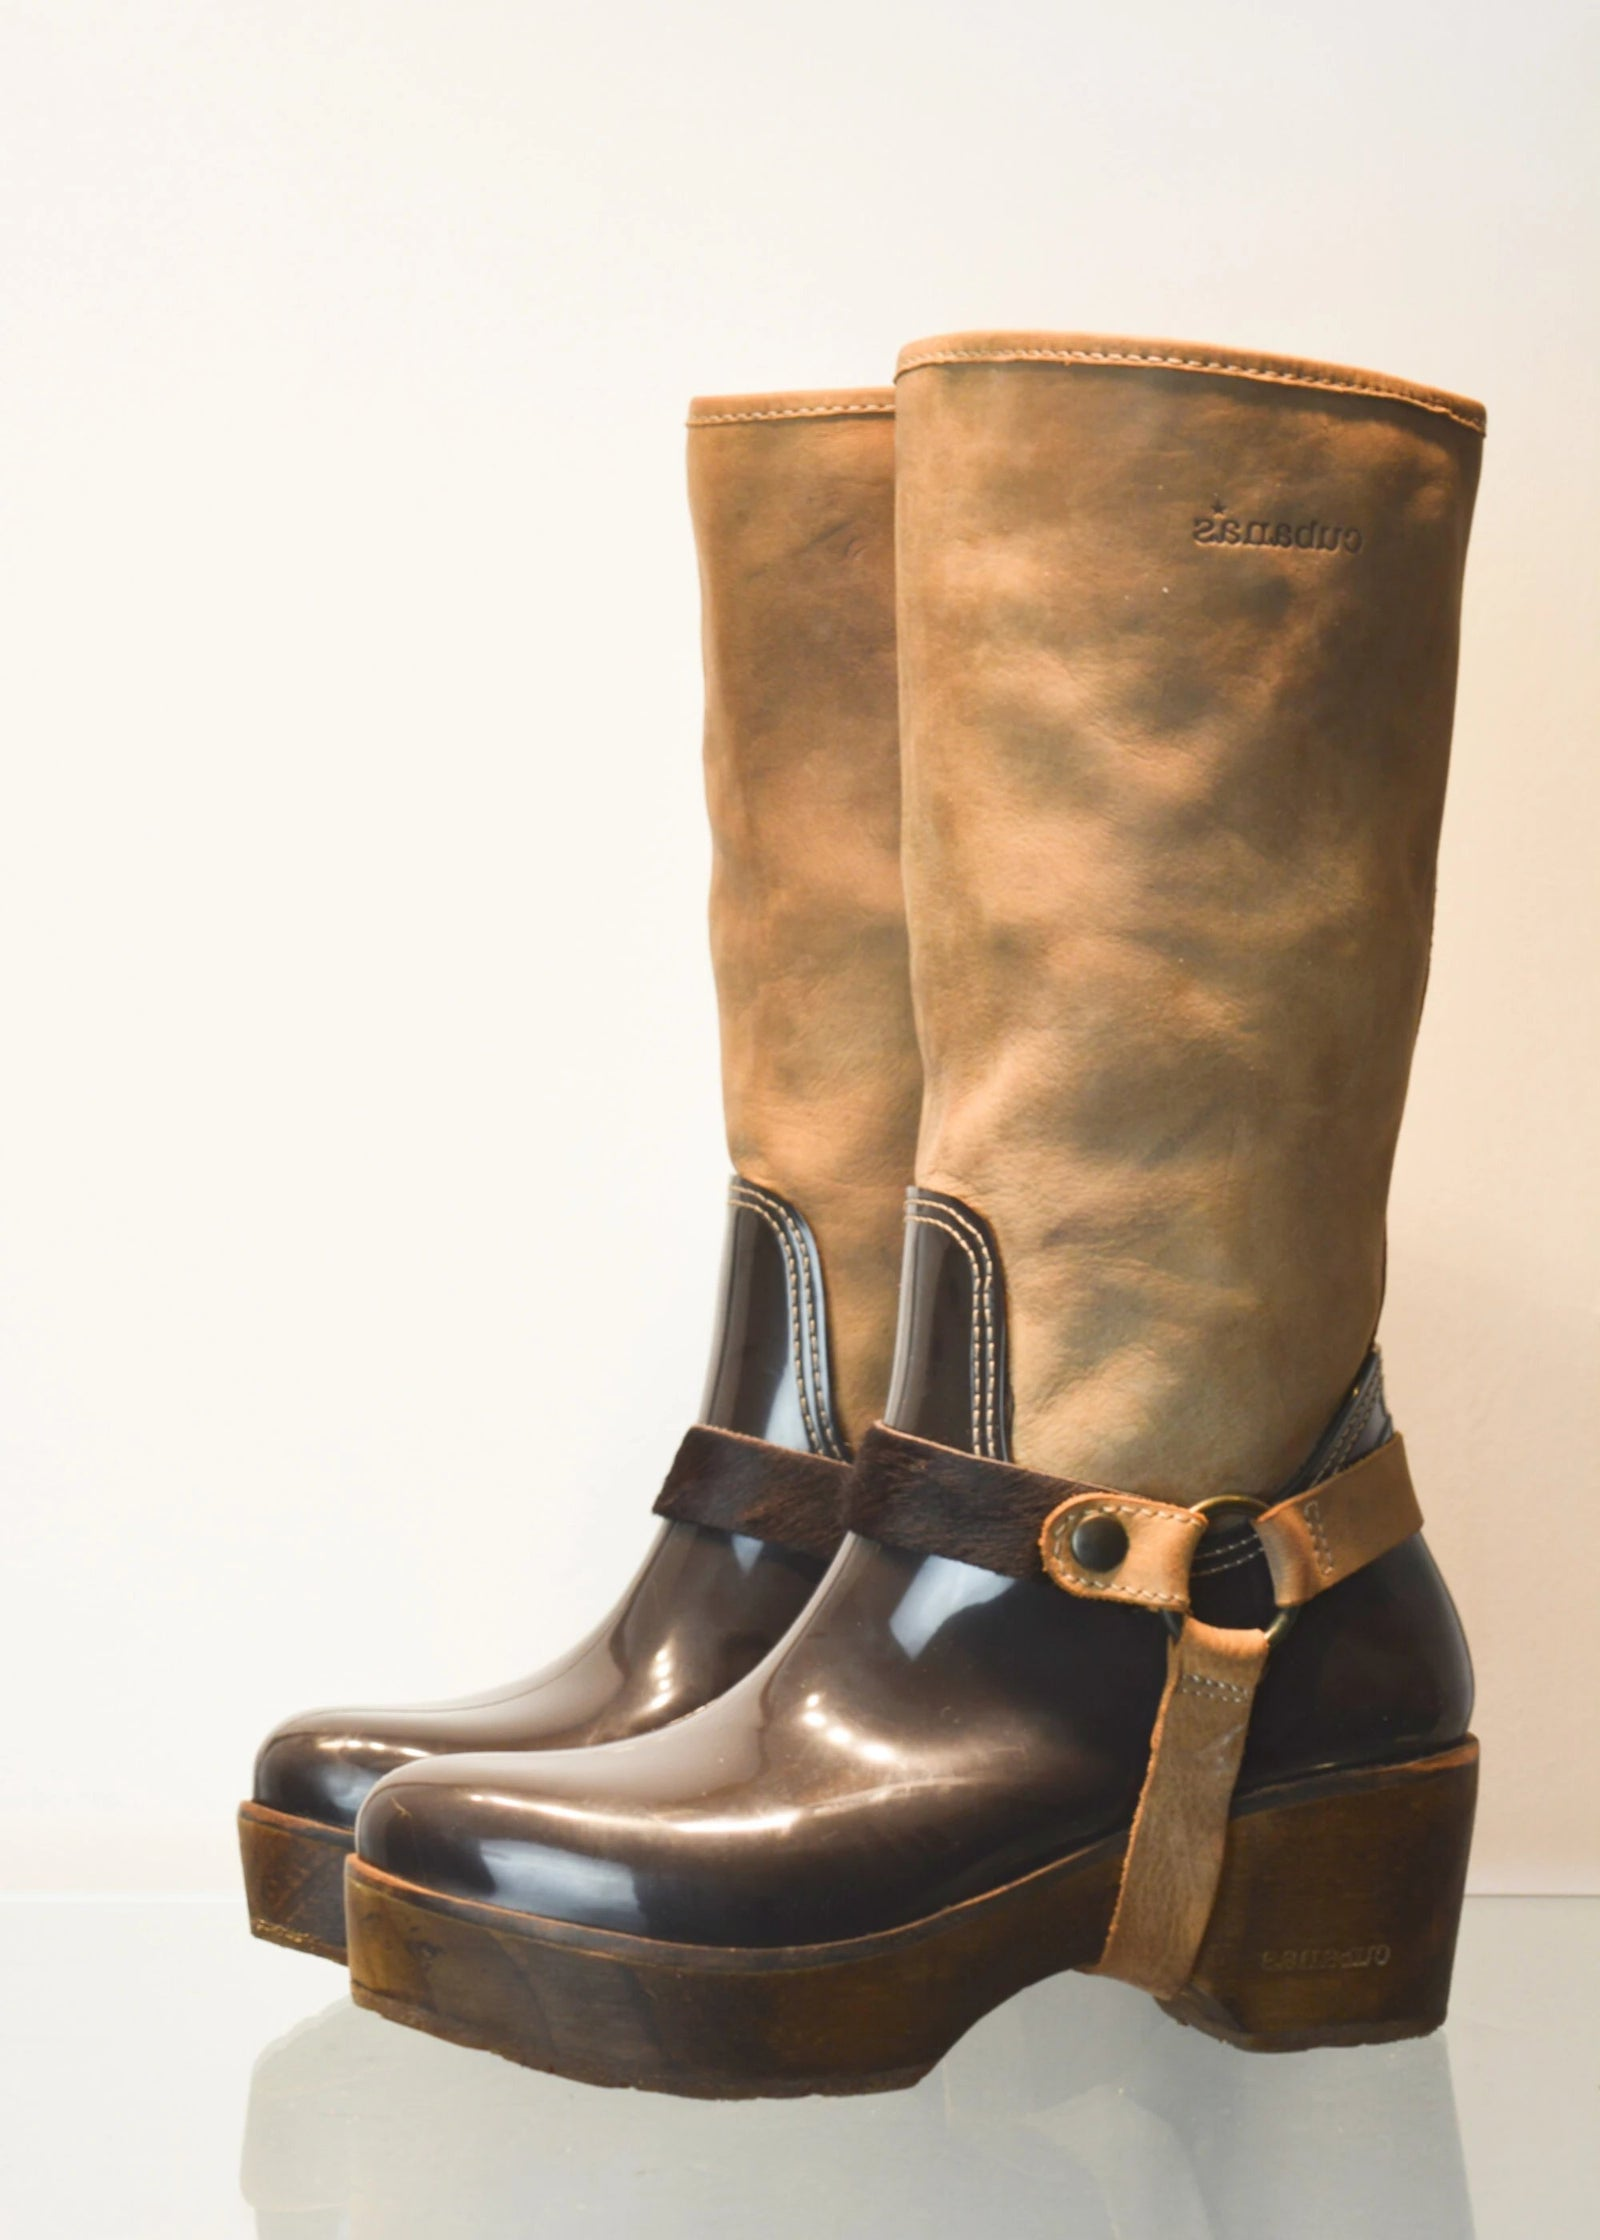 PREWORN | Preloved - 'CUBANAS' Tribal Wellies - Size 5 UK (38)